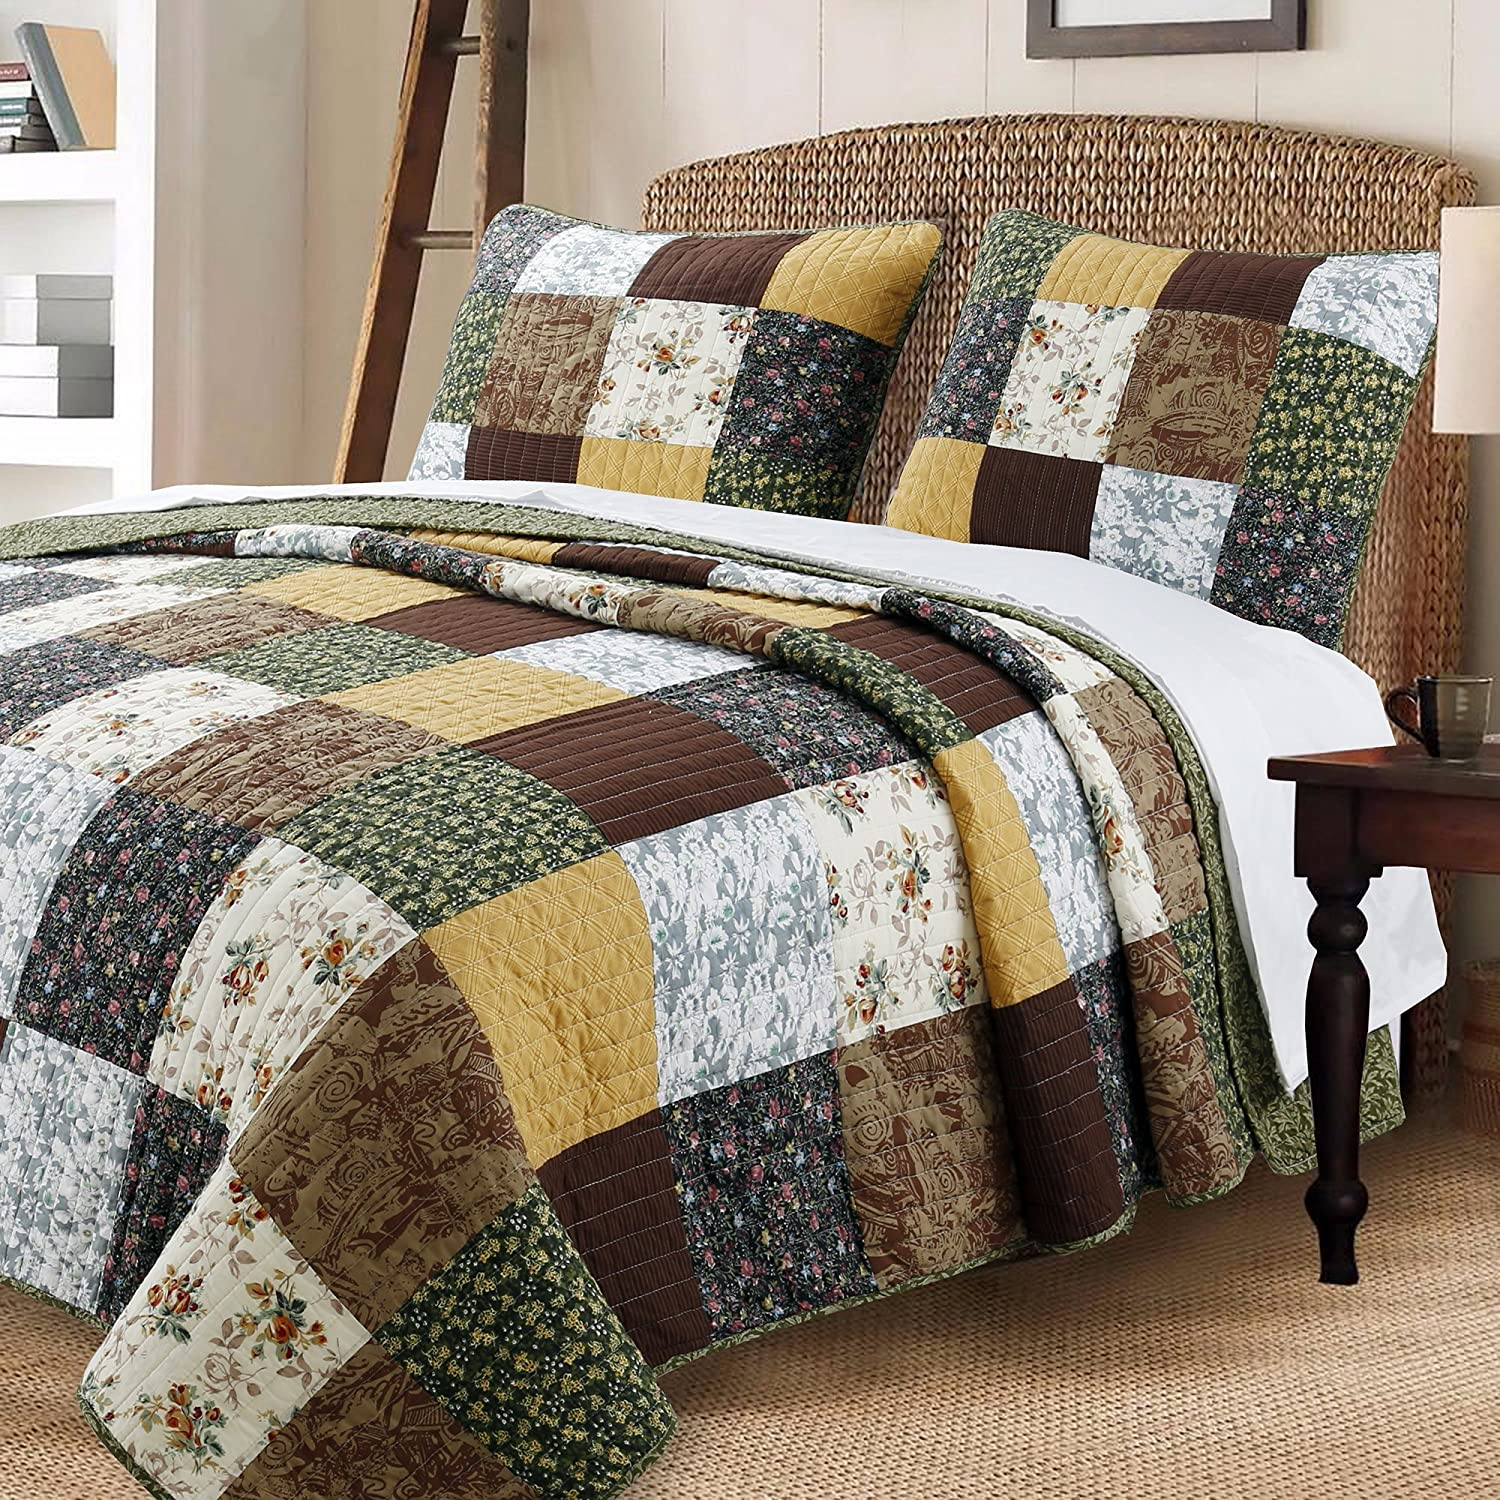 Cozy Line Home Fashions Andy Brown Olive Mustard Yellow Black Real Patchwork Quilt Bedding Set, 100% Cotton Reversible Coverlet, Bedspread Set for Men Women (Brown/Olive, Queen - 3 Piece)